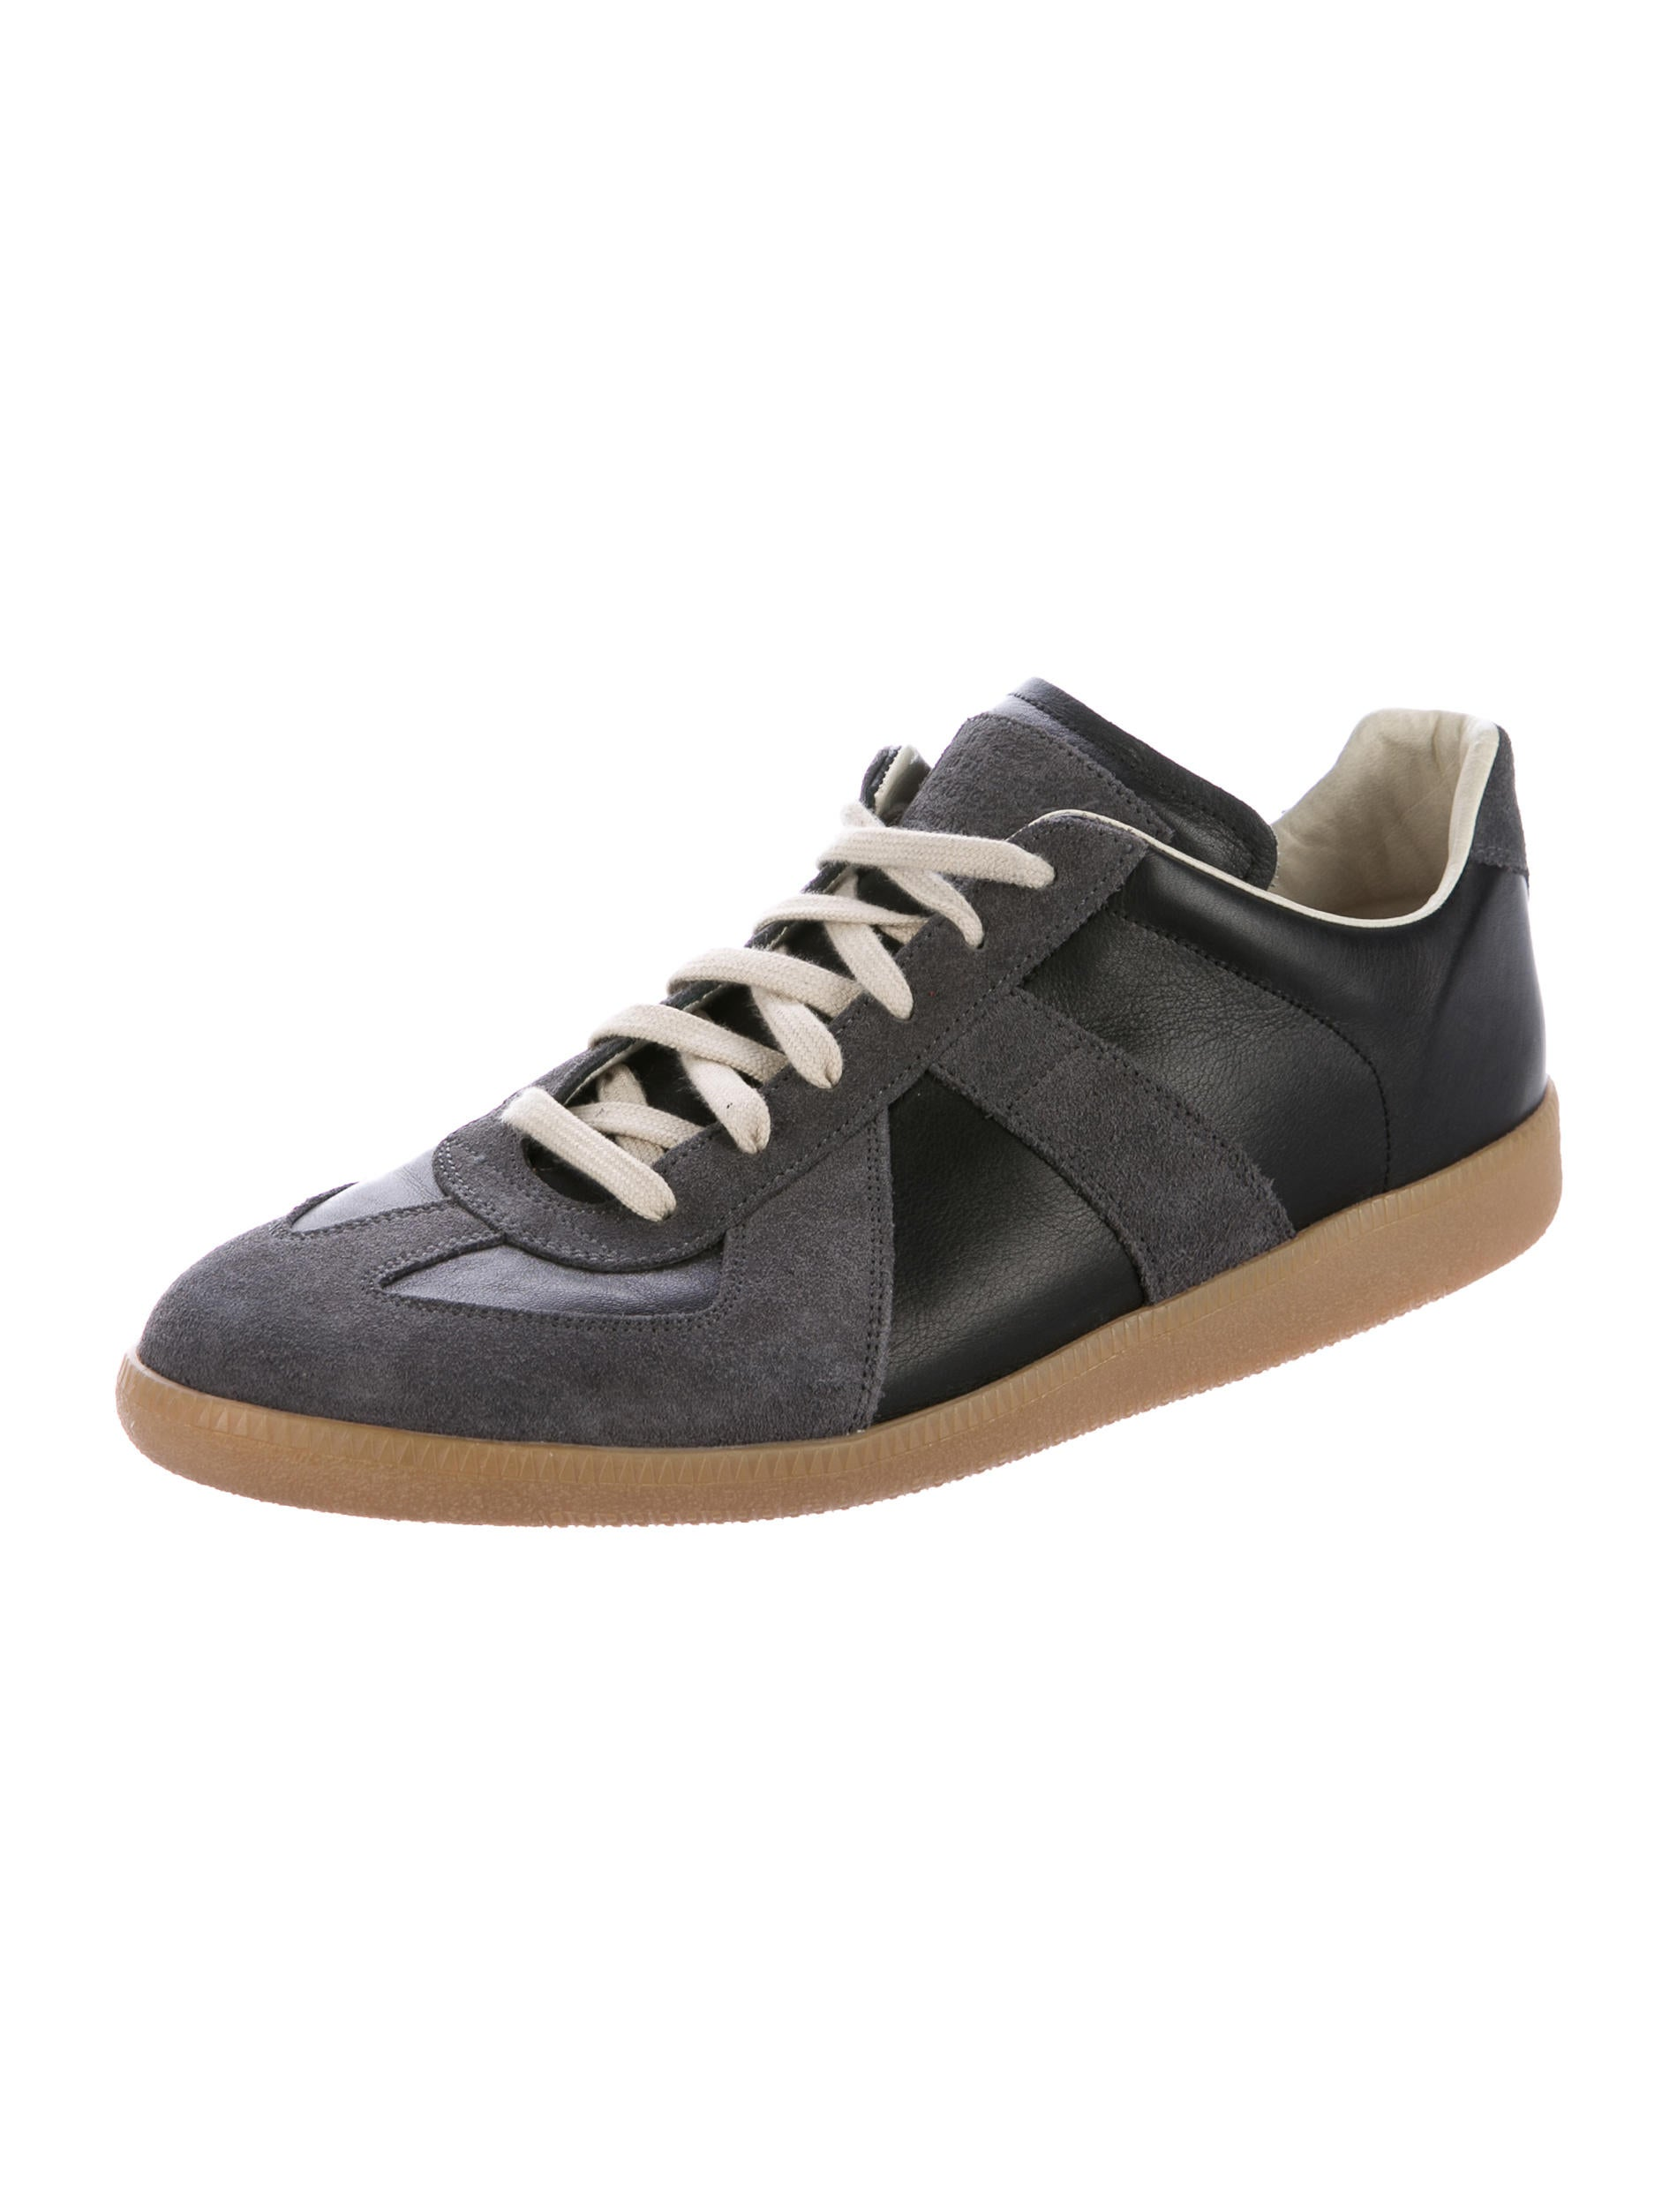 maison margiela replica leather sneakers shoes mai31807 the realreal. Black Bedroom Furniture Sets. Home Design Ideas